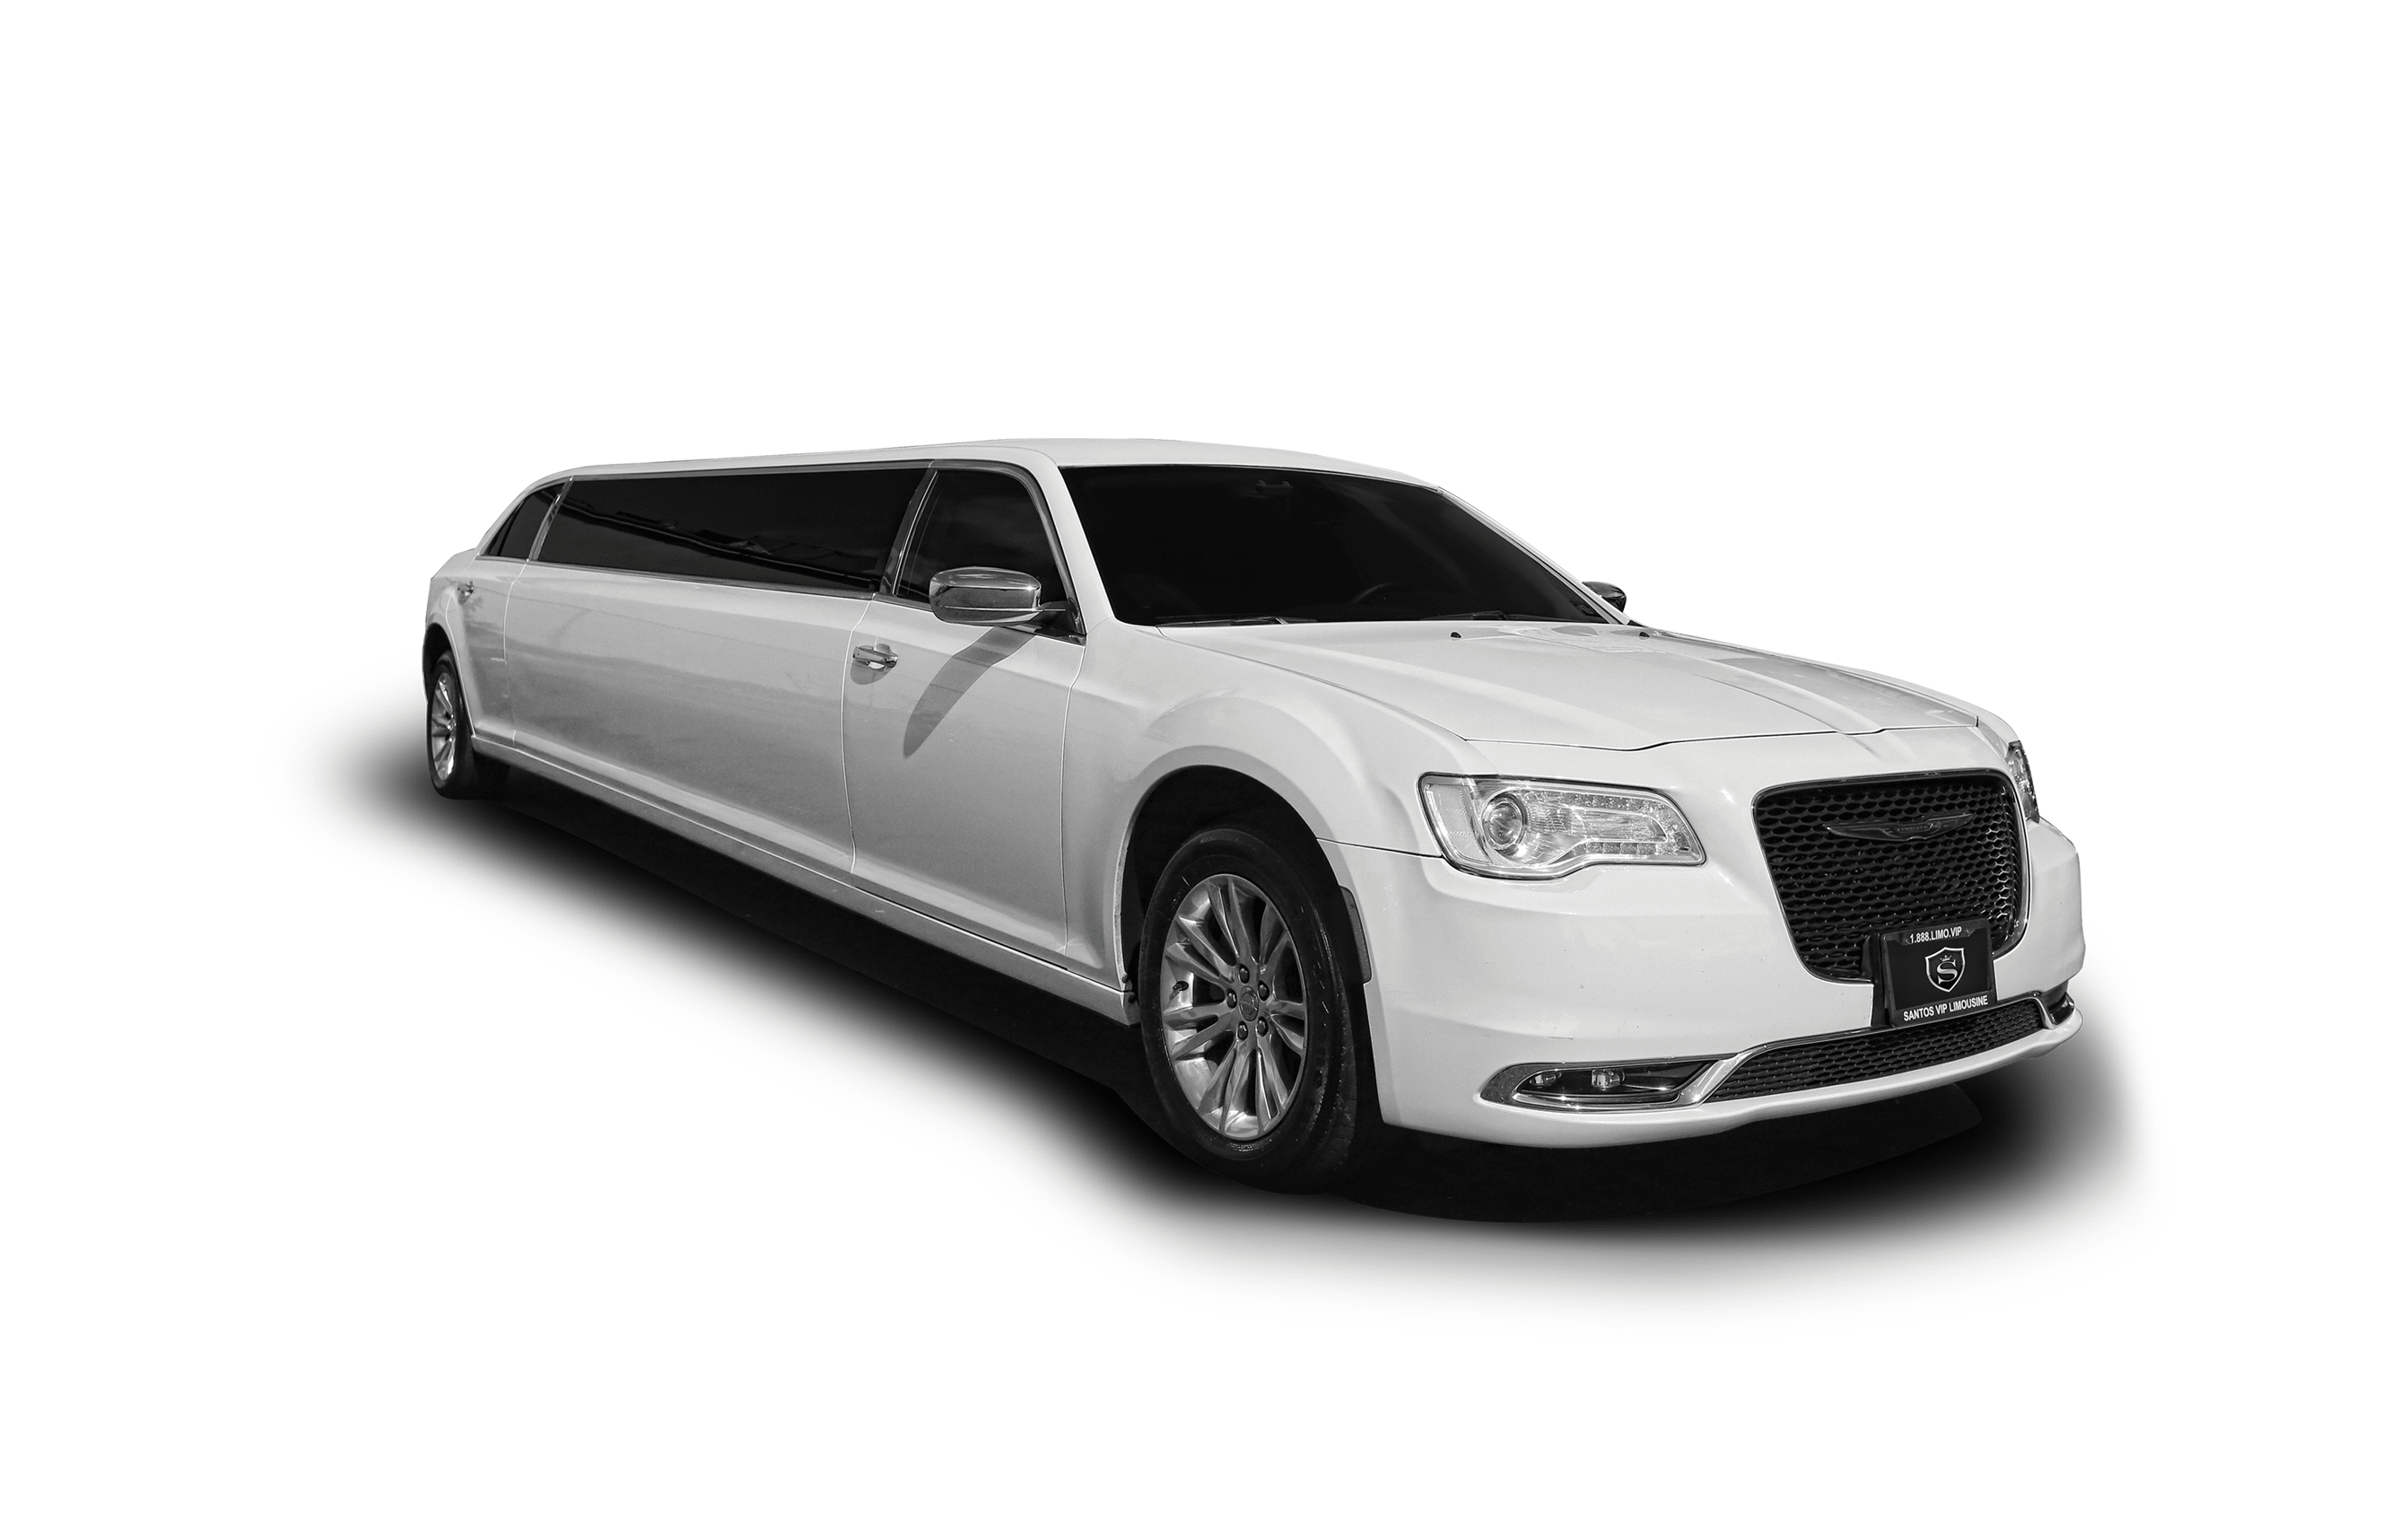 Chrysler 300 stretch limo for Haunted House Crawl in NJ, PA & NY